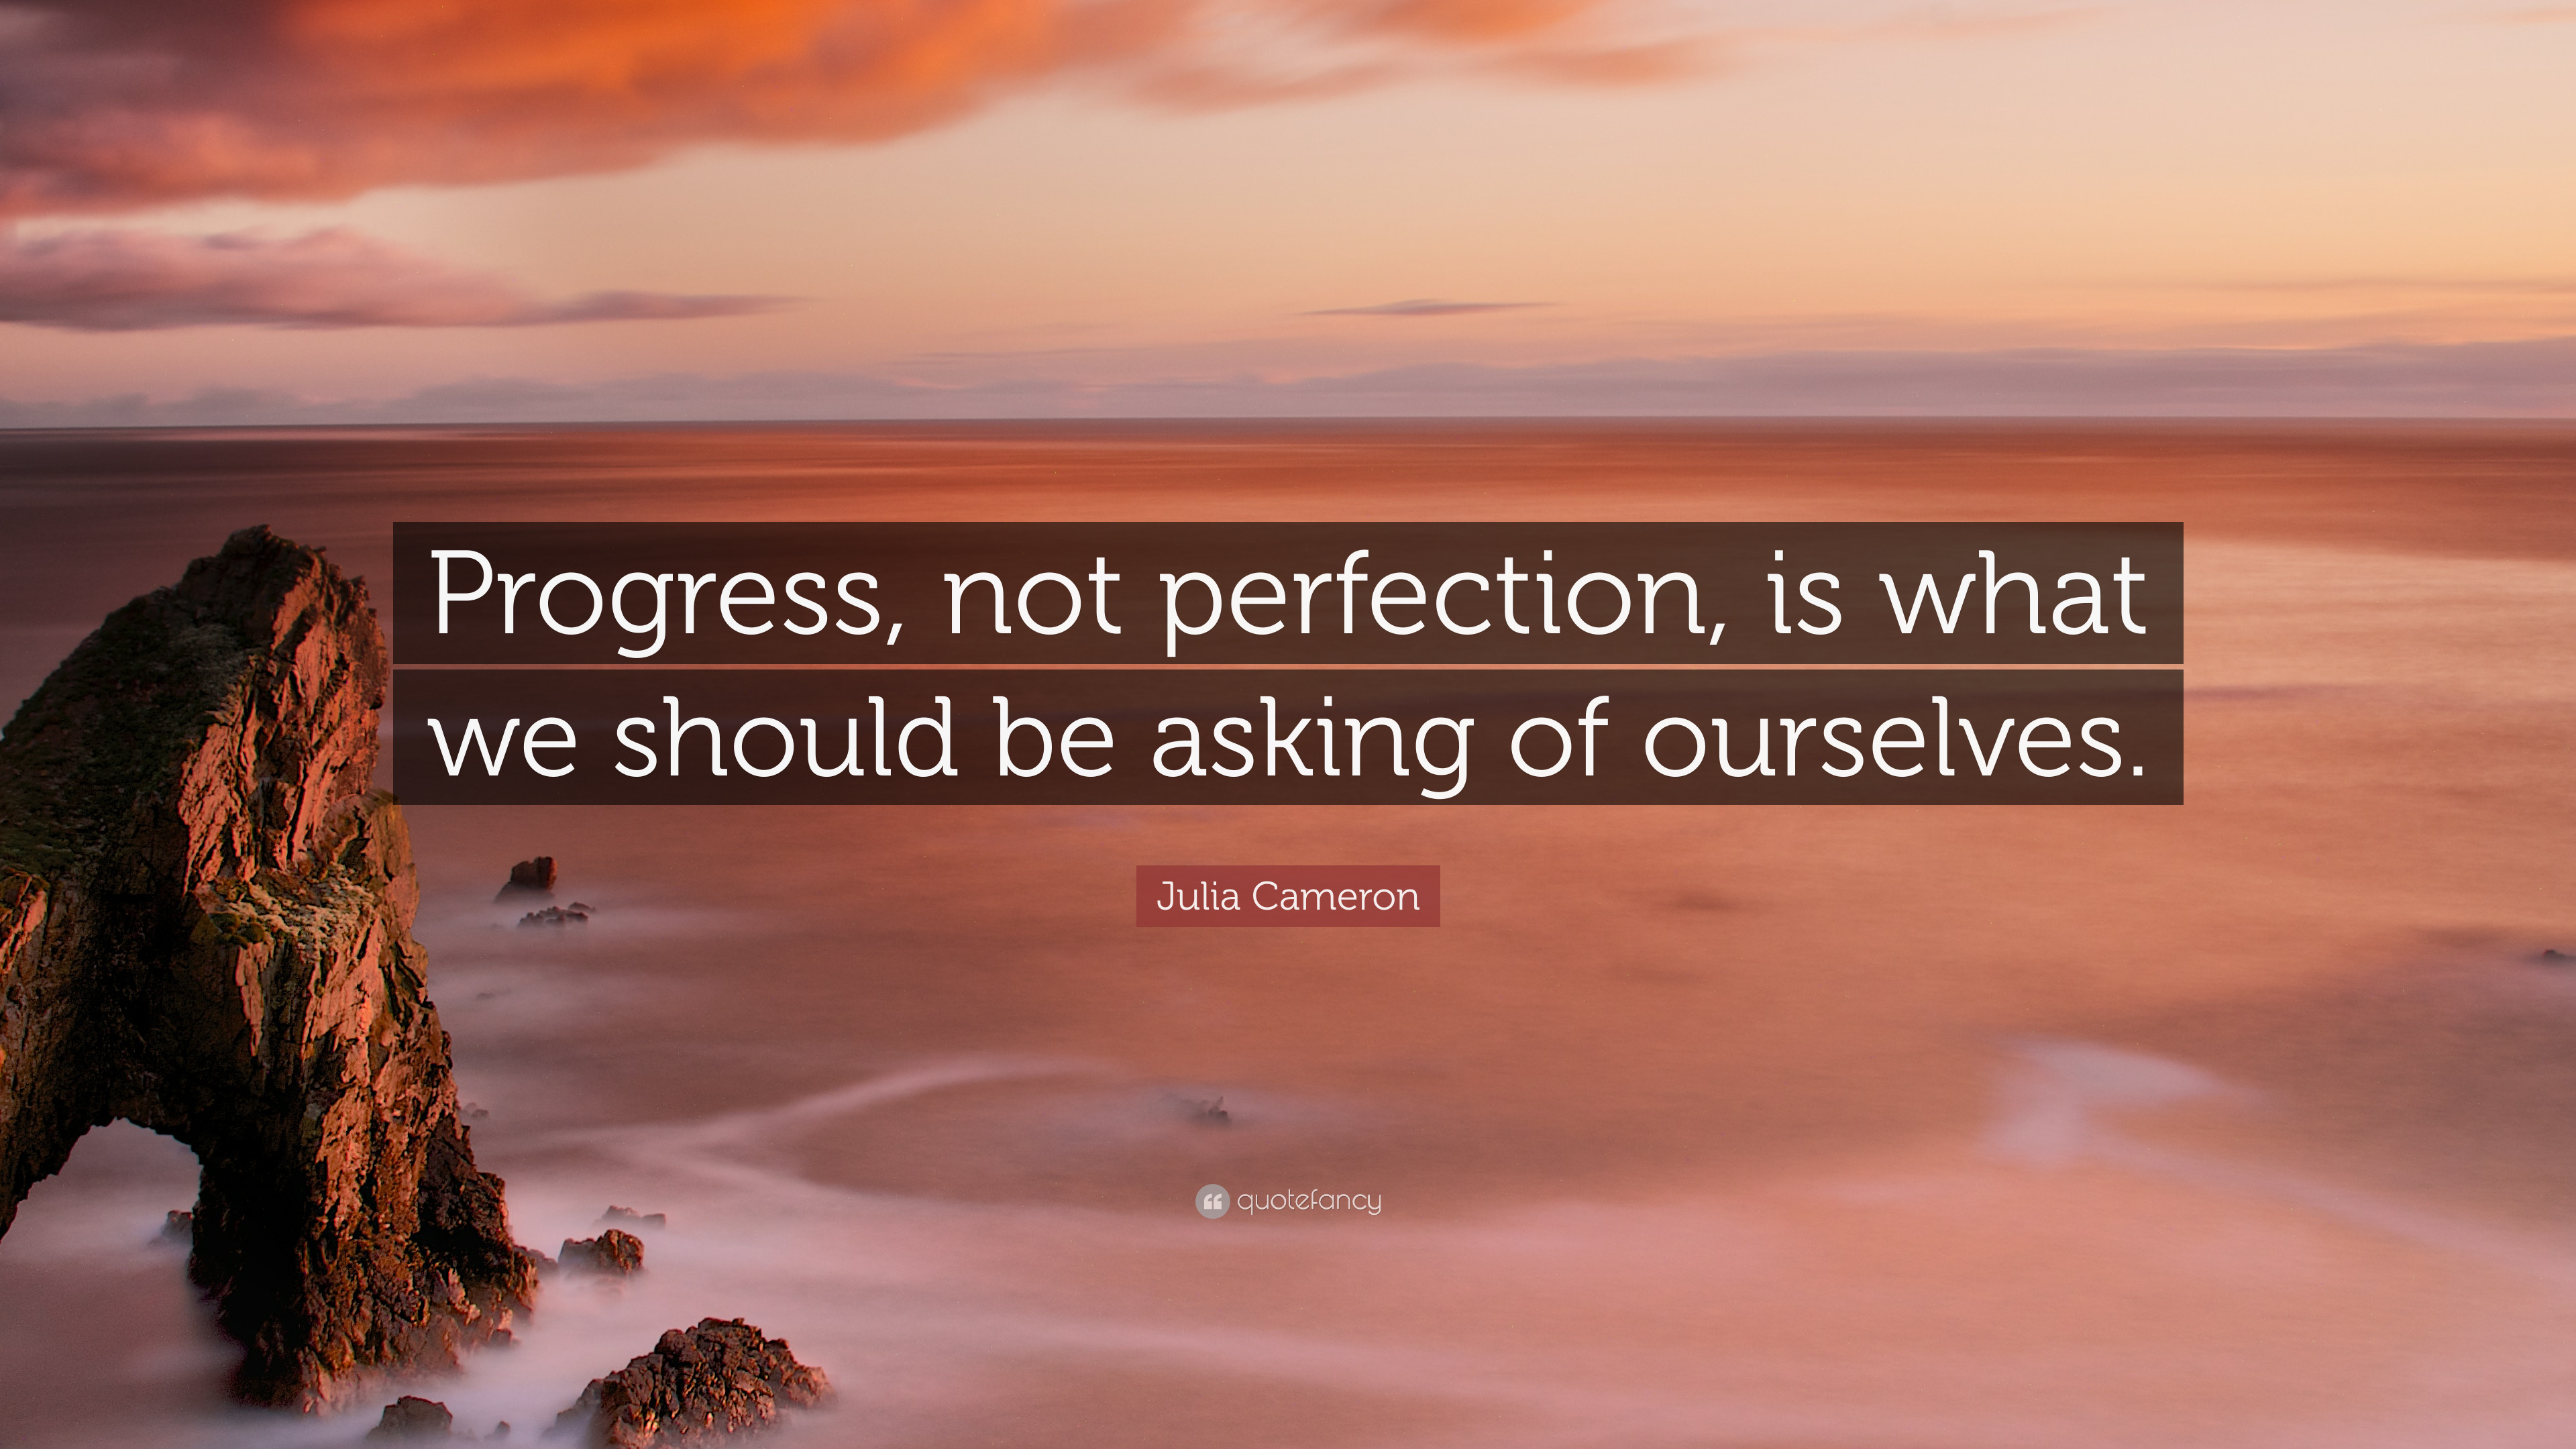 """Julia Cameron Quote: """"Progress, not perfection, is what we should be asking  of ourselves."""" (7 wallpapers) - Quotefancy"""